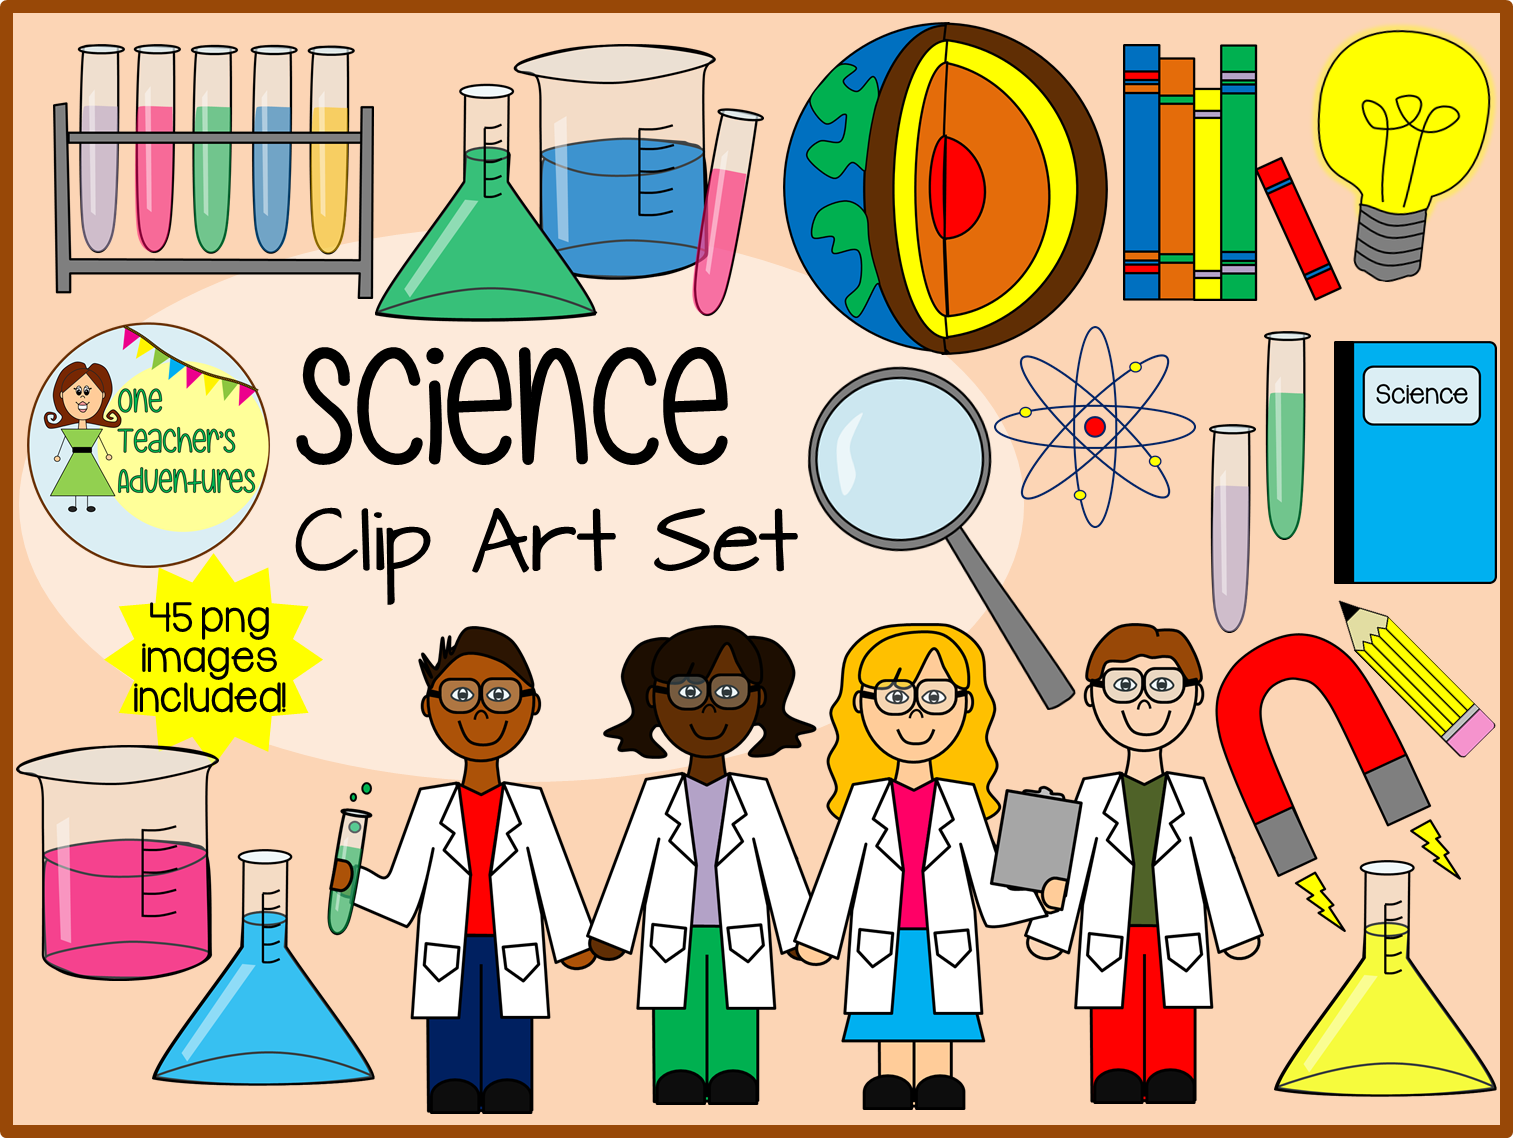 45 s clipart banner transparent library Science Clip Art Set - 45 png images for commercial or personal use ... banner transparent library